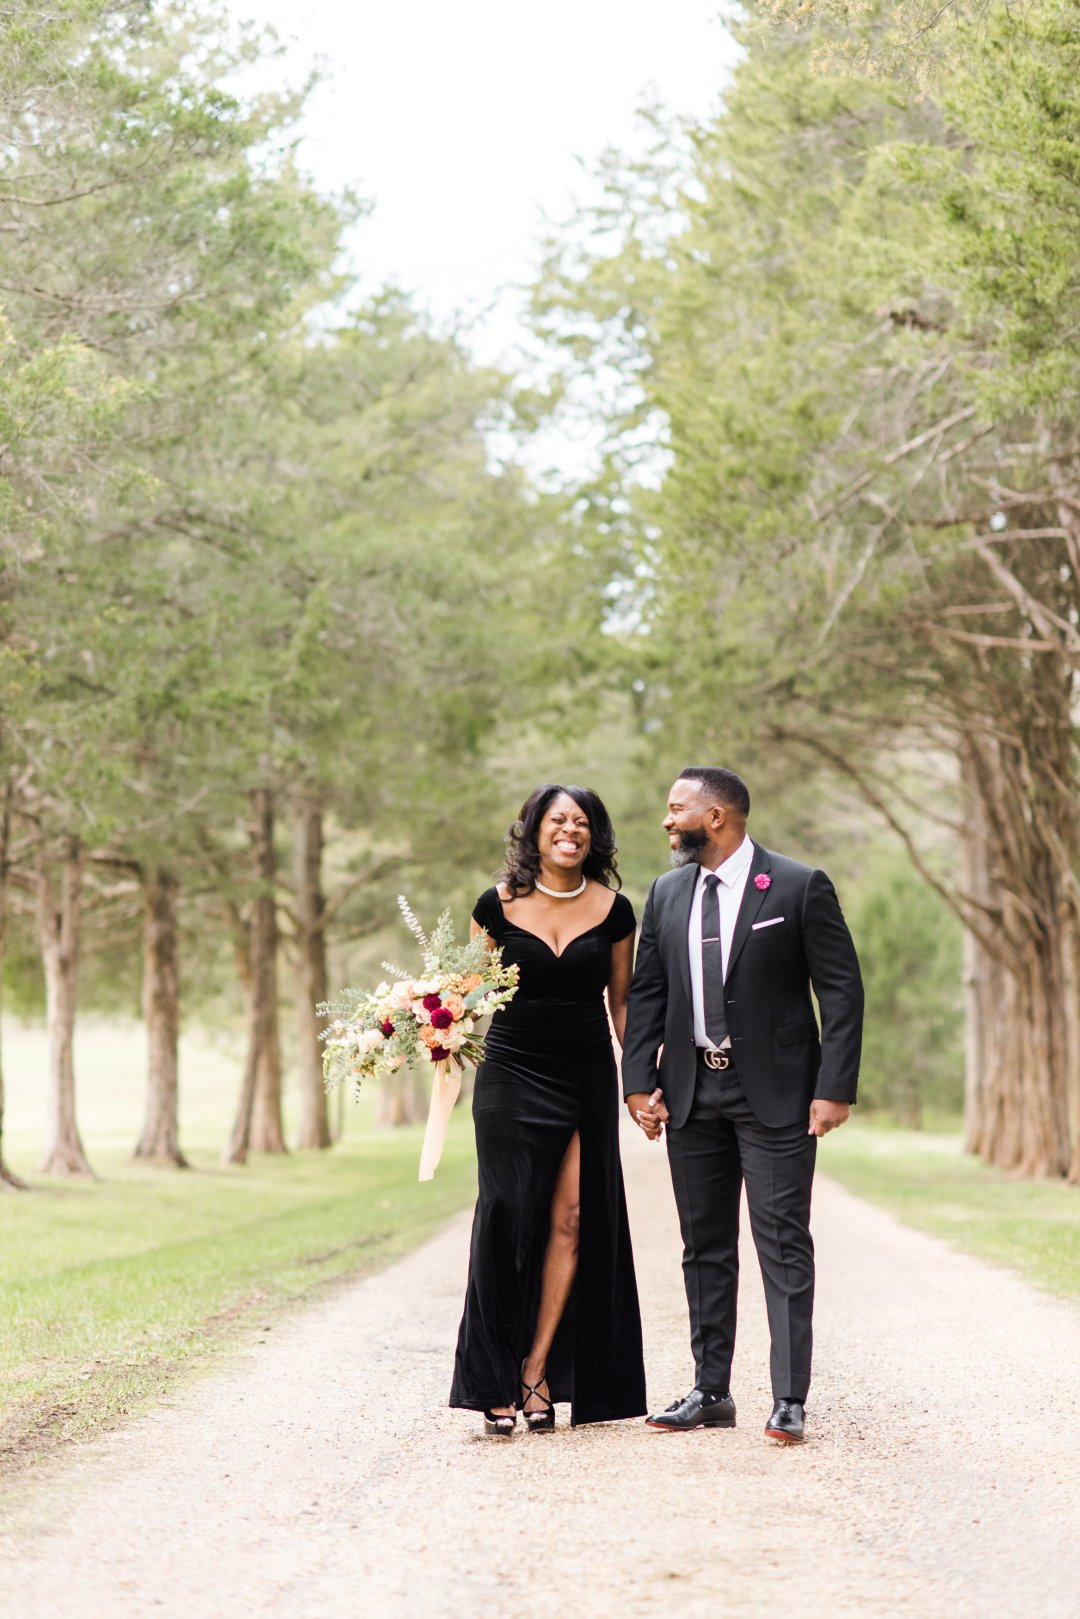 gaines2018-84-1440x2158 Southern Black Love: 25 Anniversary Shoot with the Gaines Family